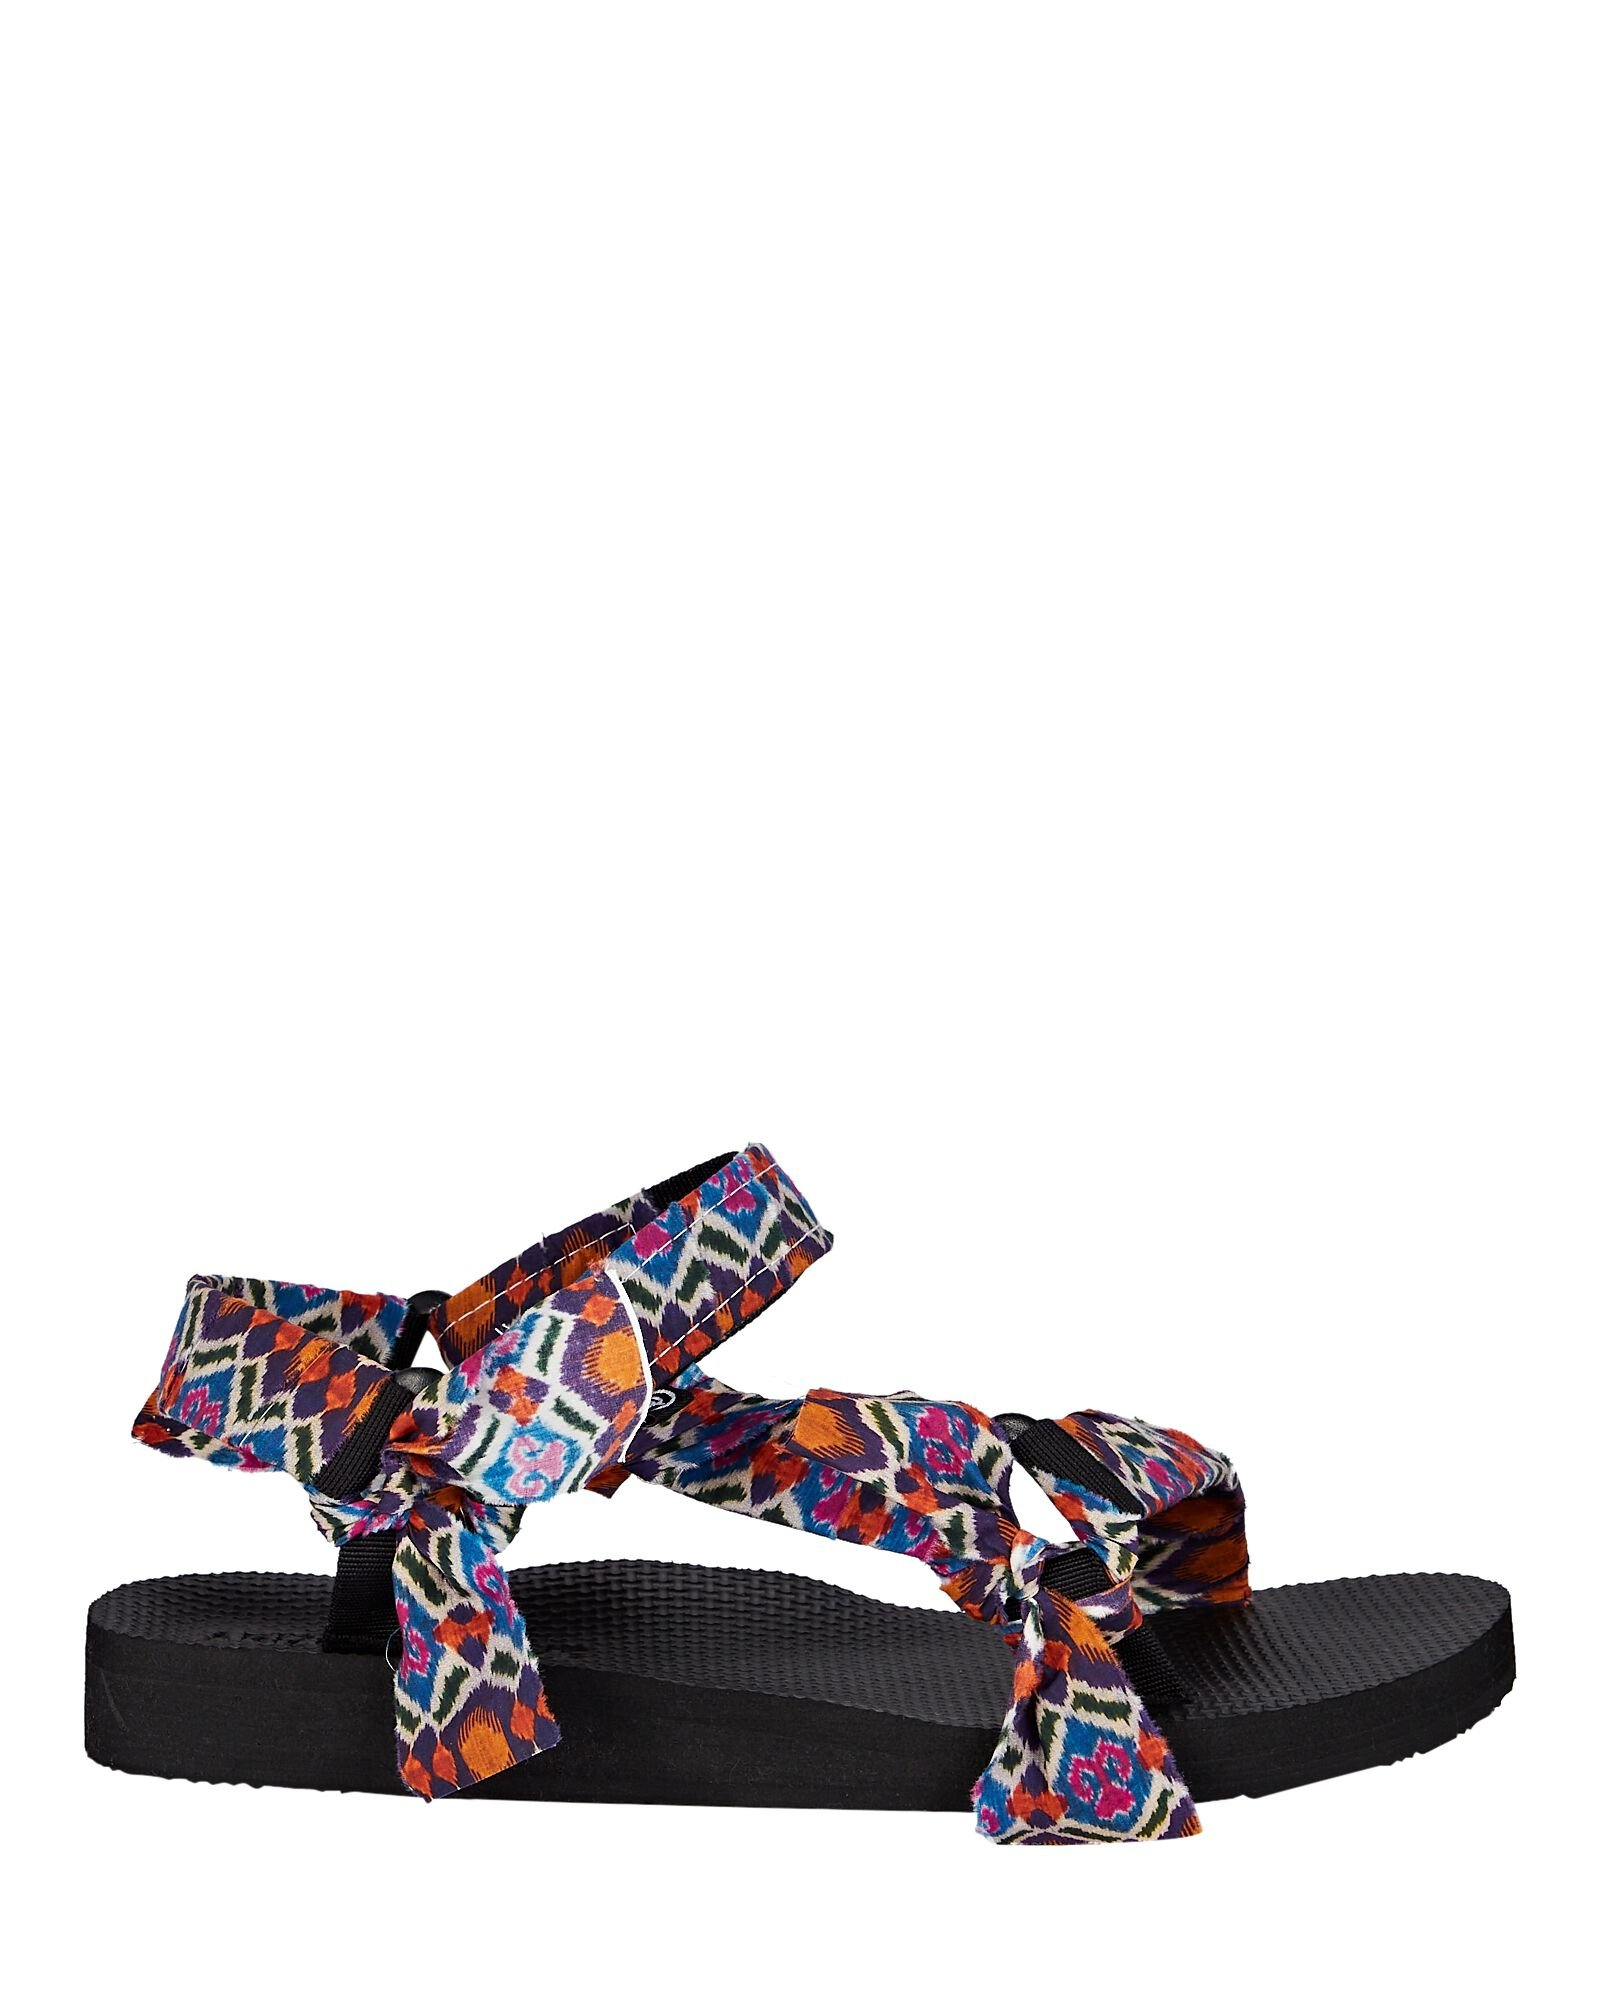 Trekky Abstract Knotted Sandals, MULTI, hi-res